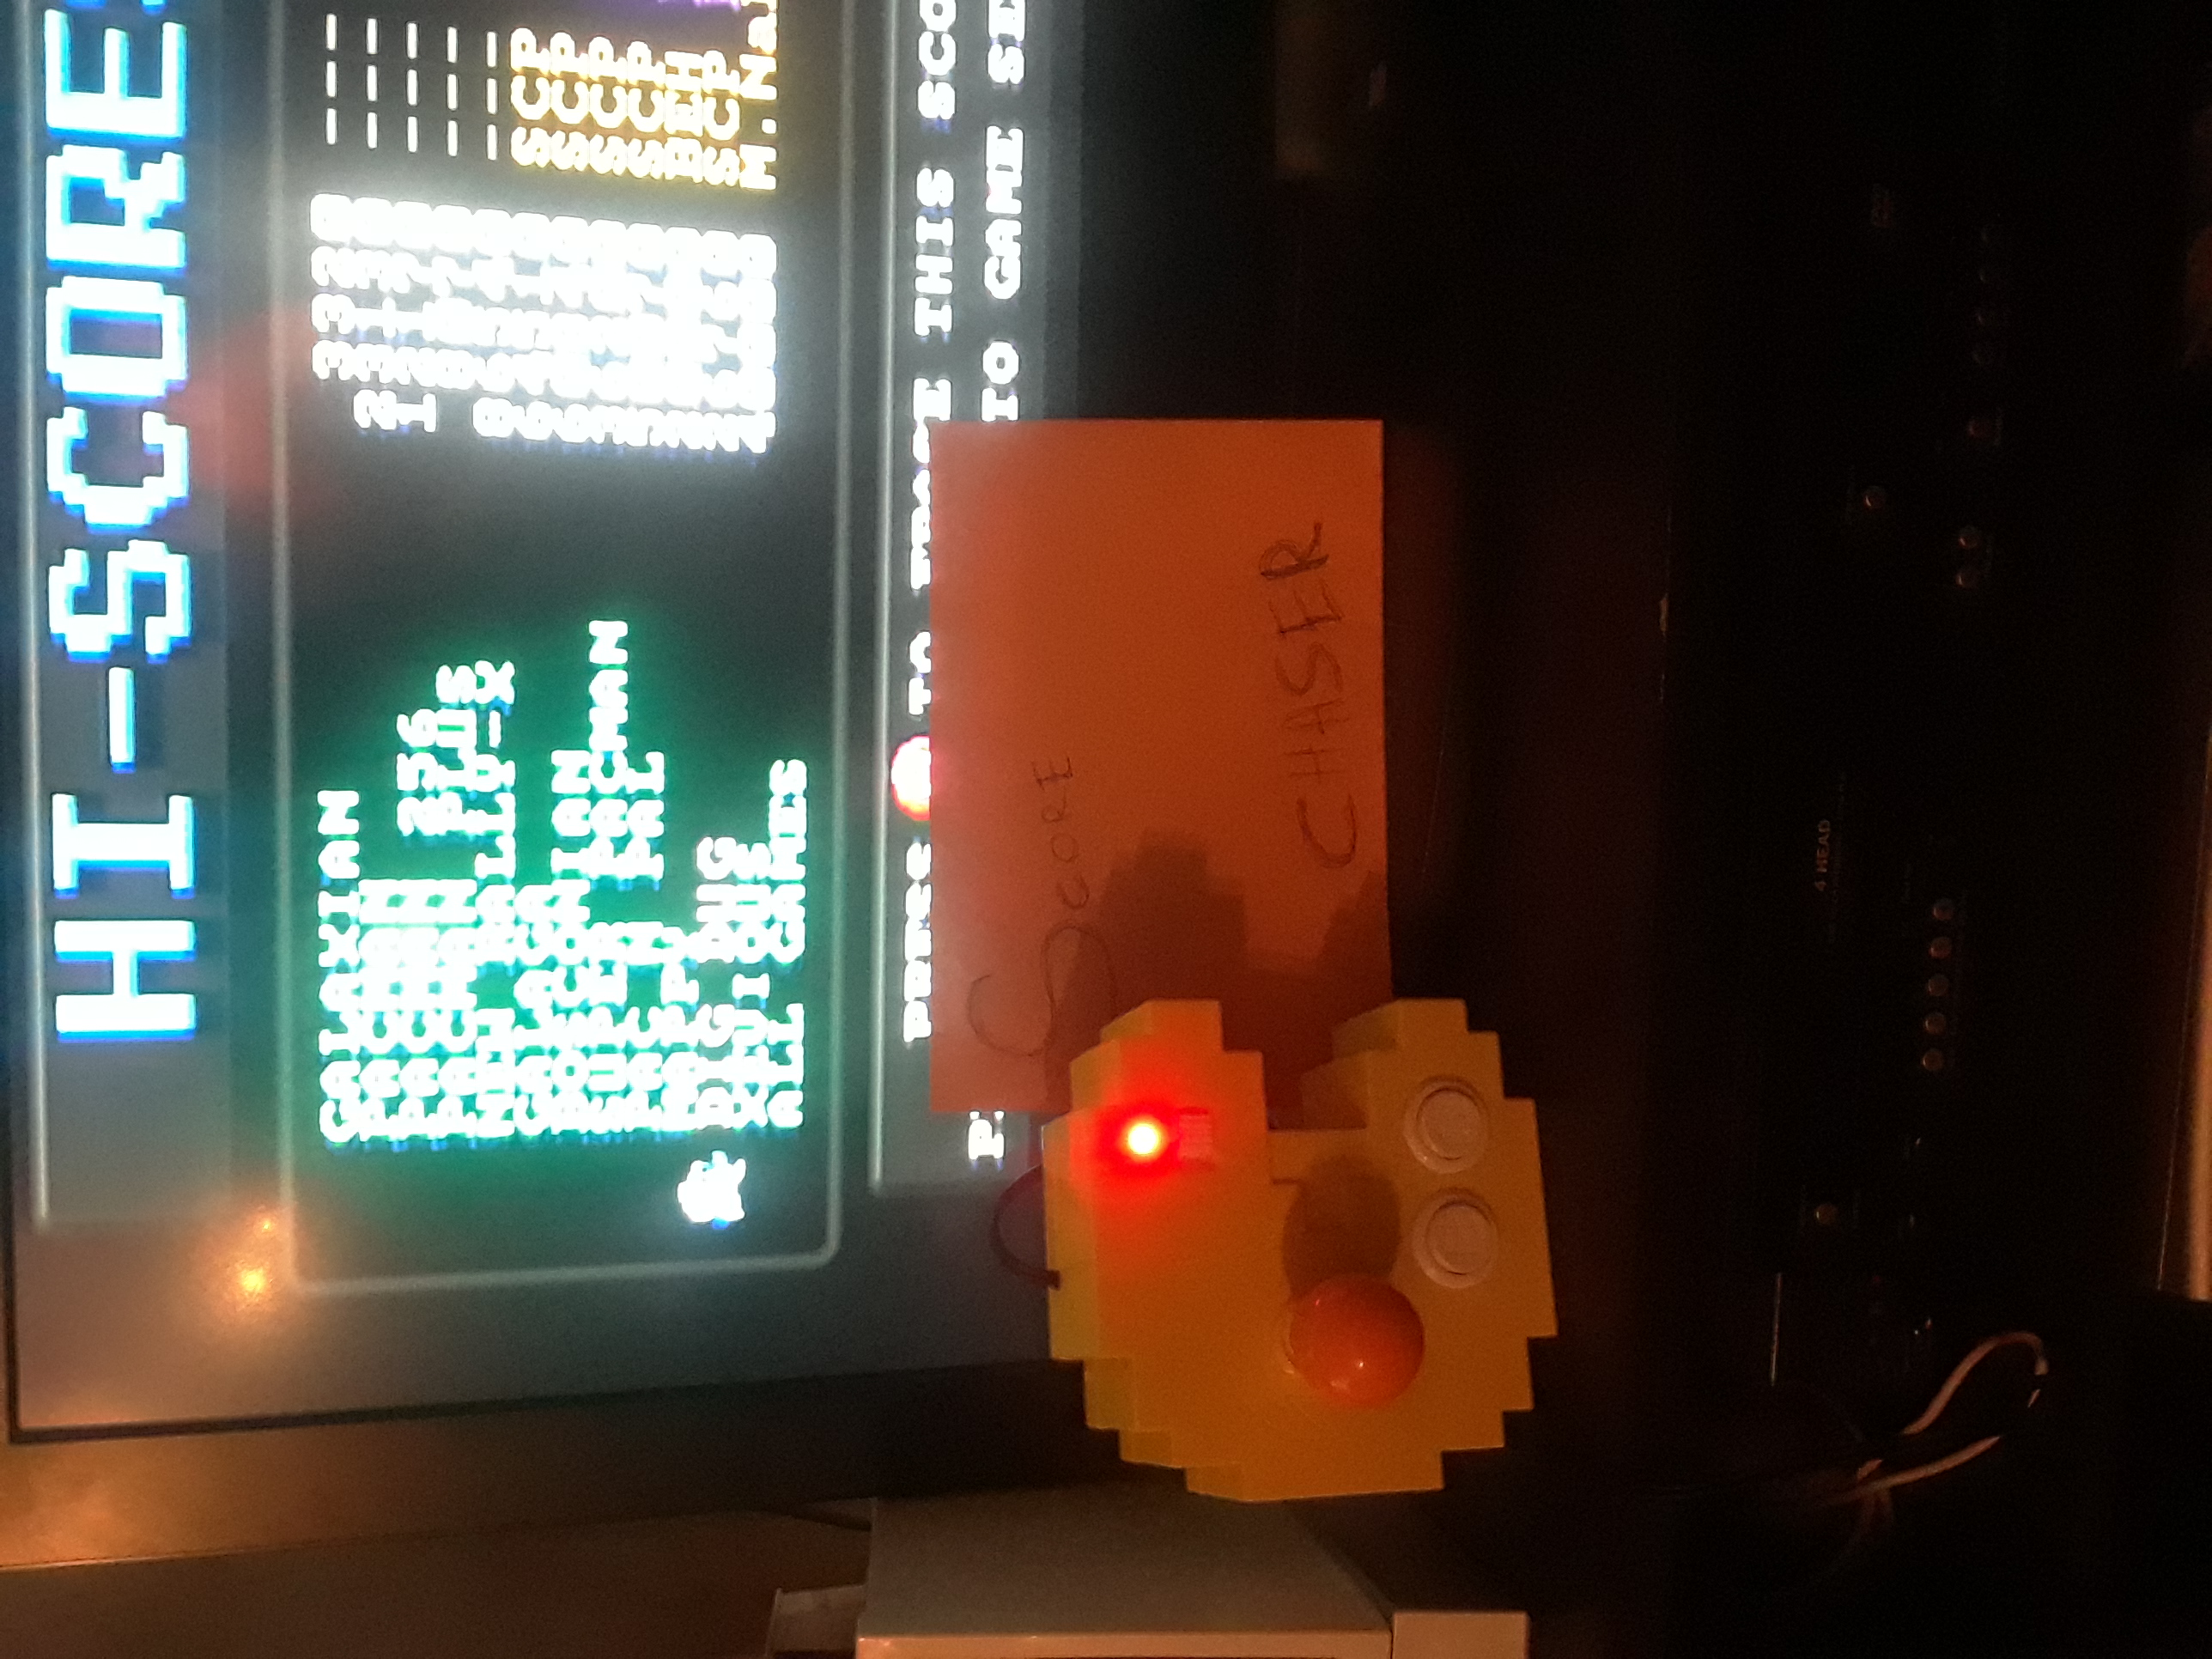 Scorechaserpony: Dig Dug (Bandai Pac-Man Connect and Play) 26,760 points on 2018-05-03 18:08:40